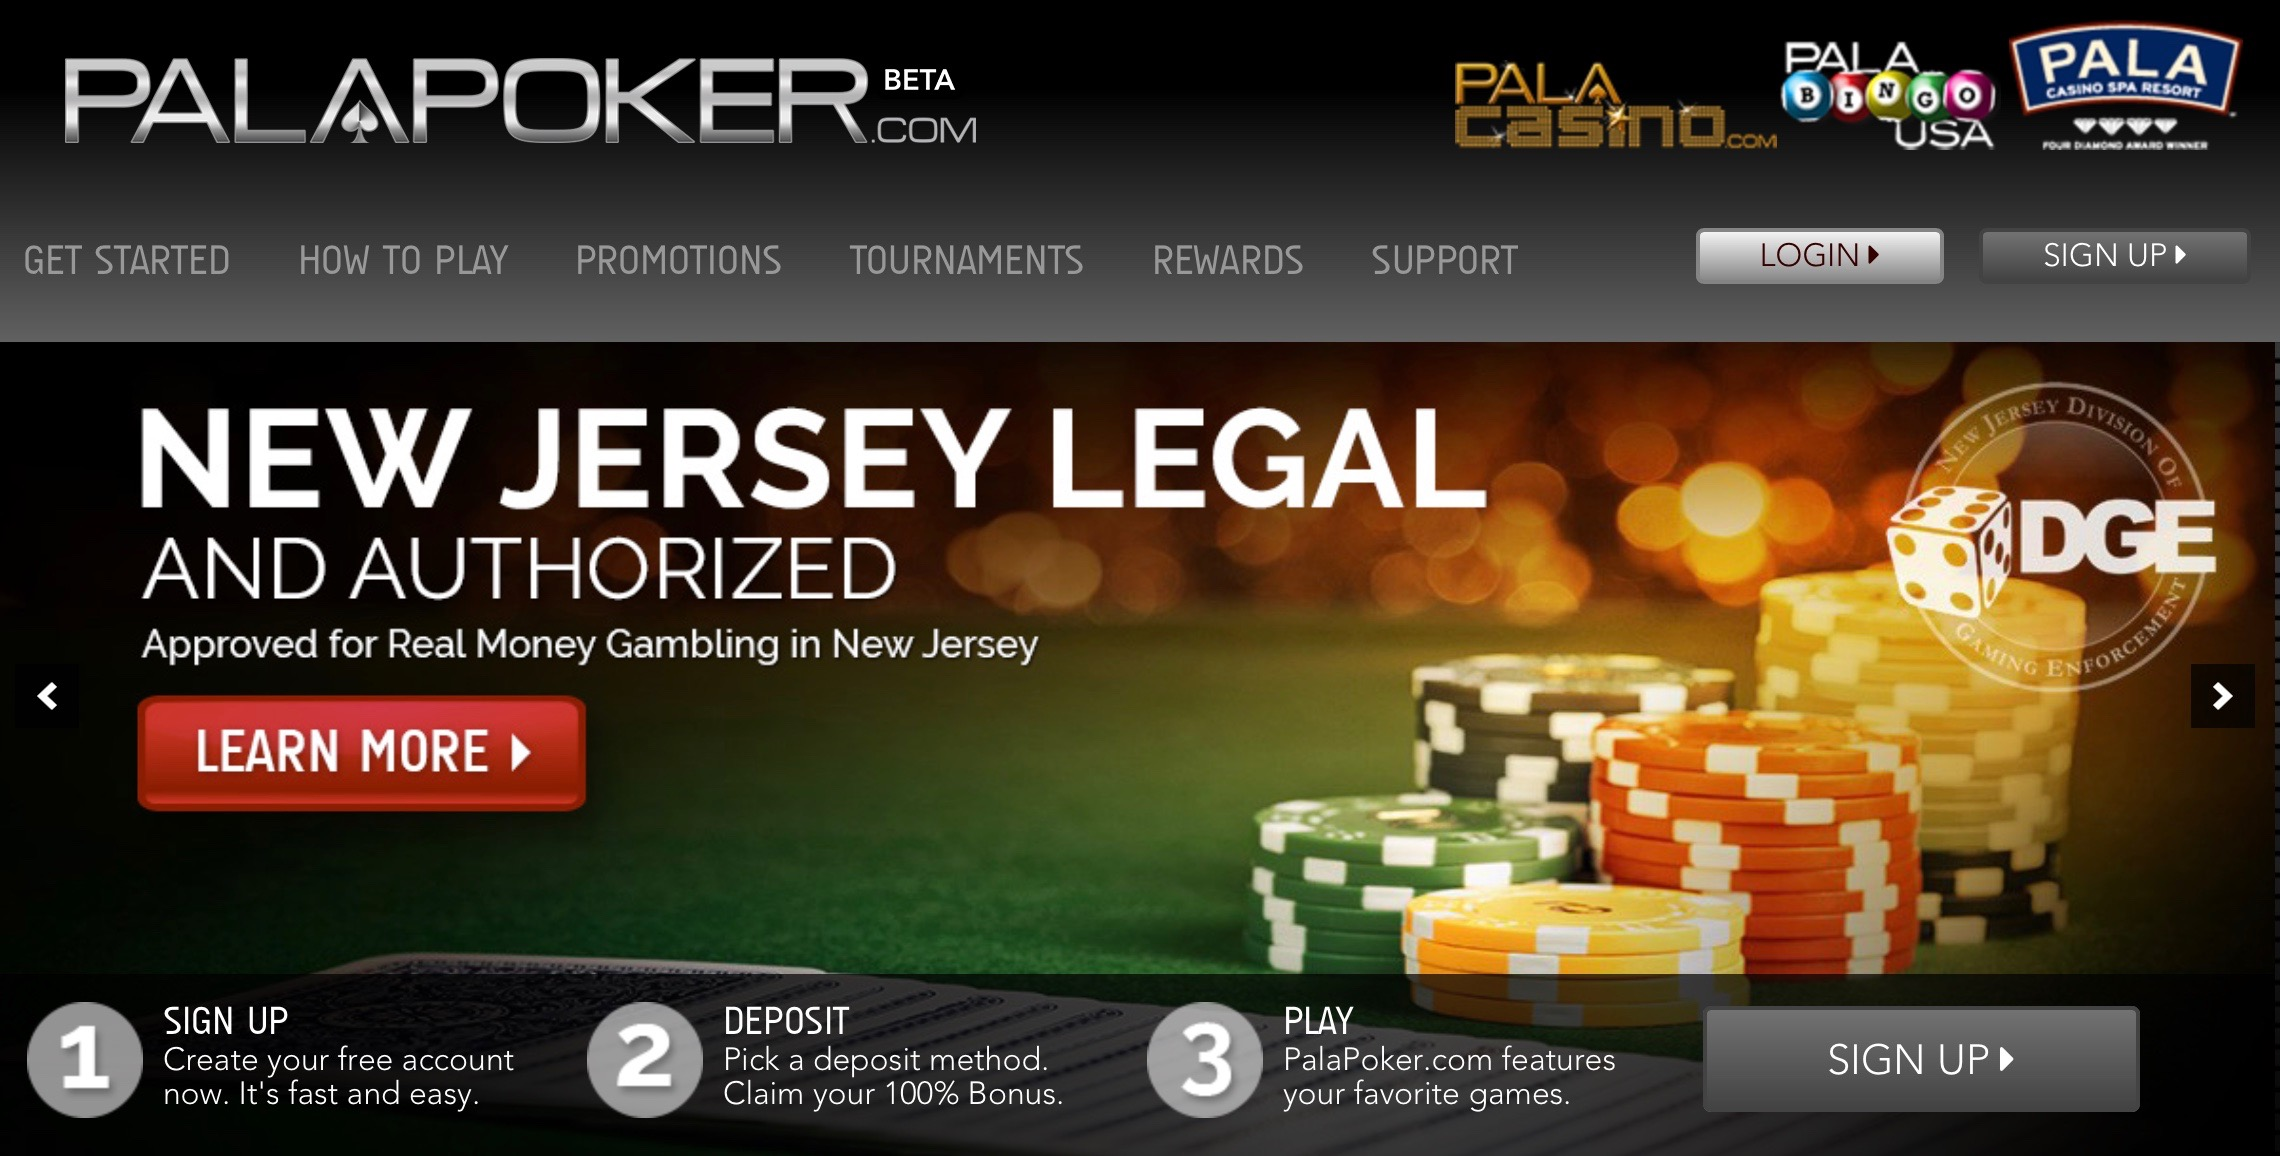 Pala Band launches another online gambling site in New Jersey